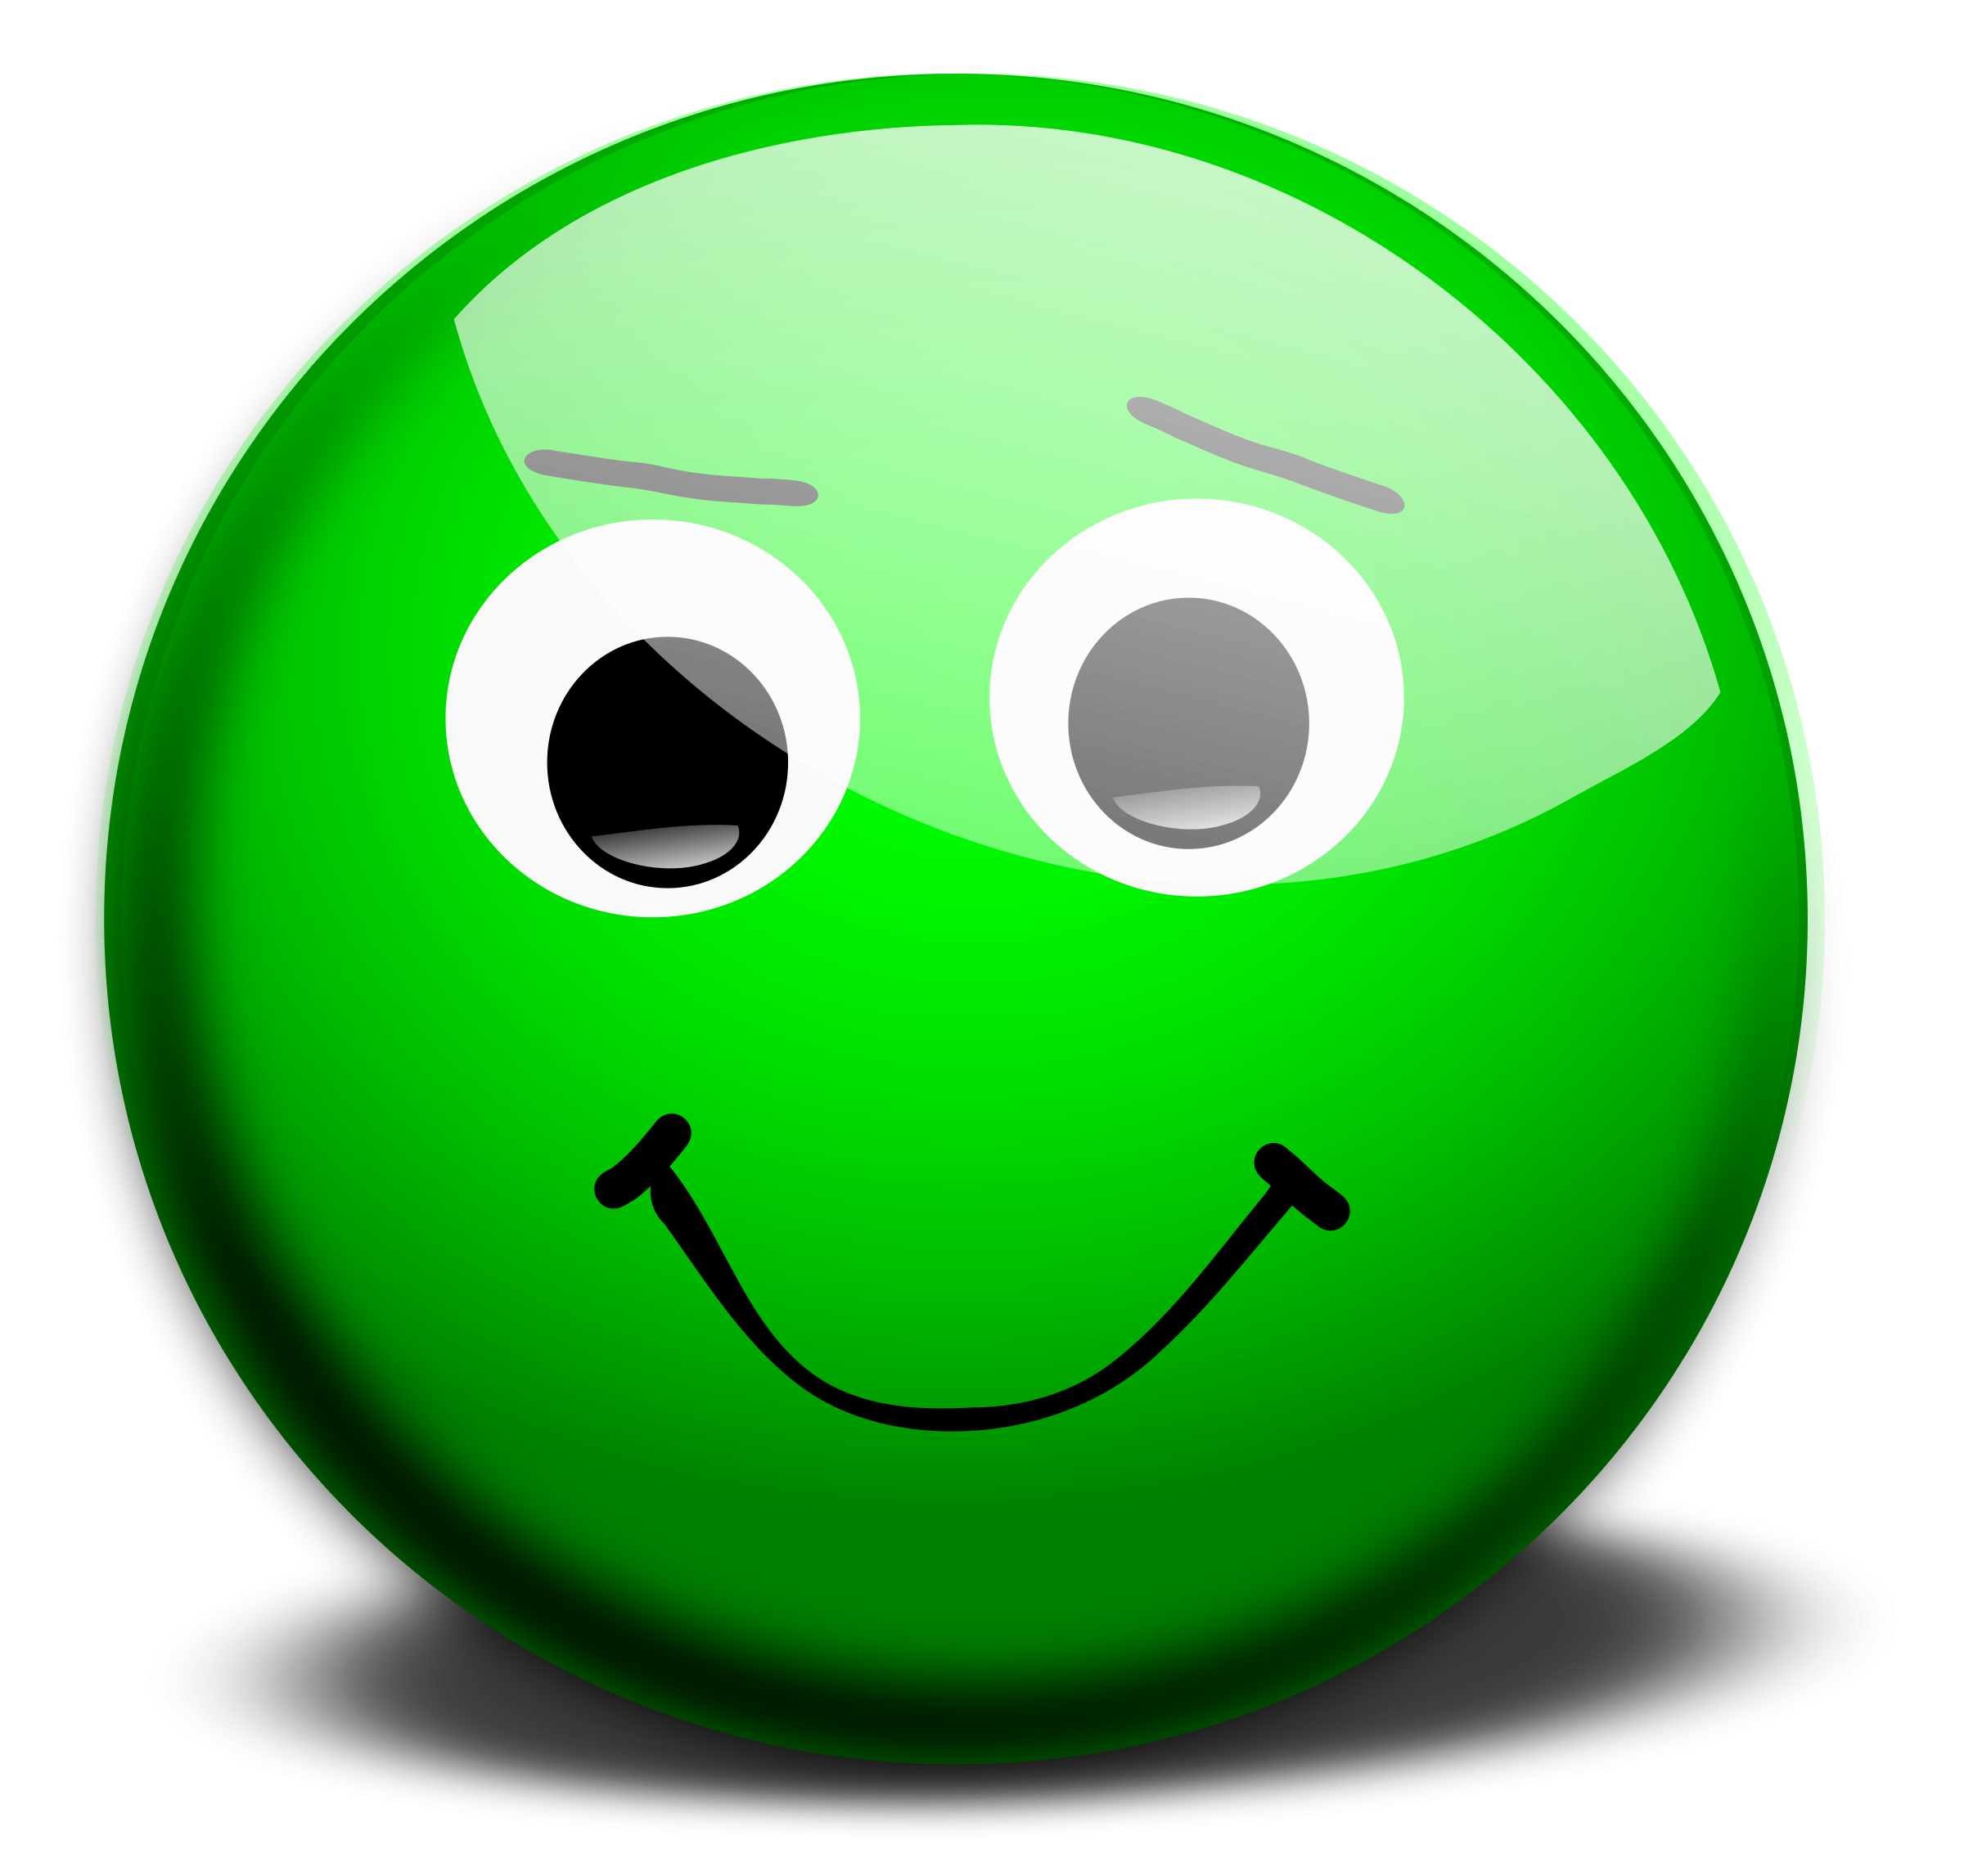 Green smiley clipartxtras. Excited clipart yellow happy face